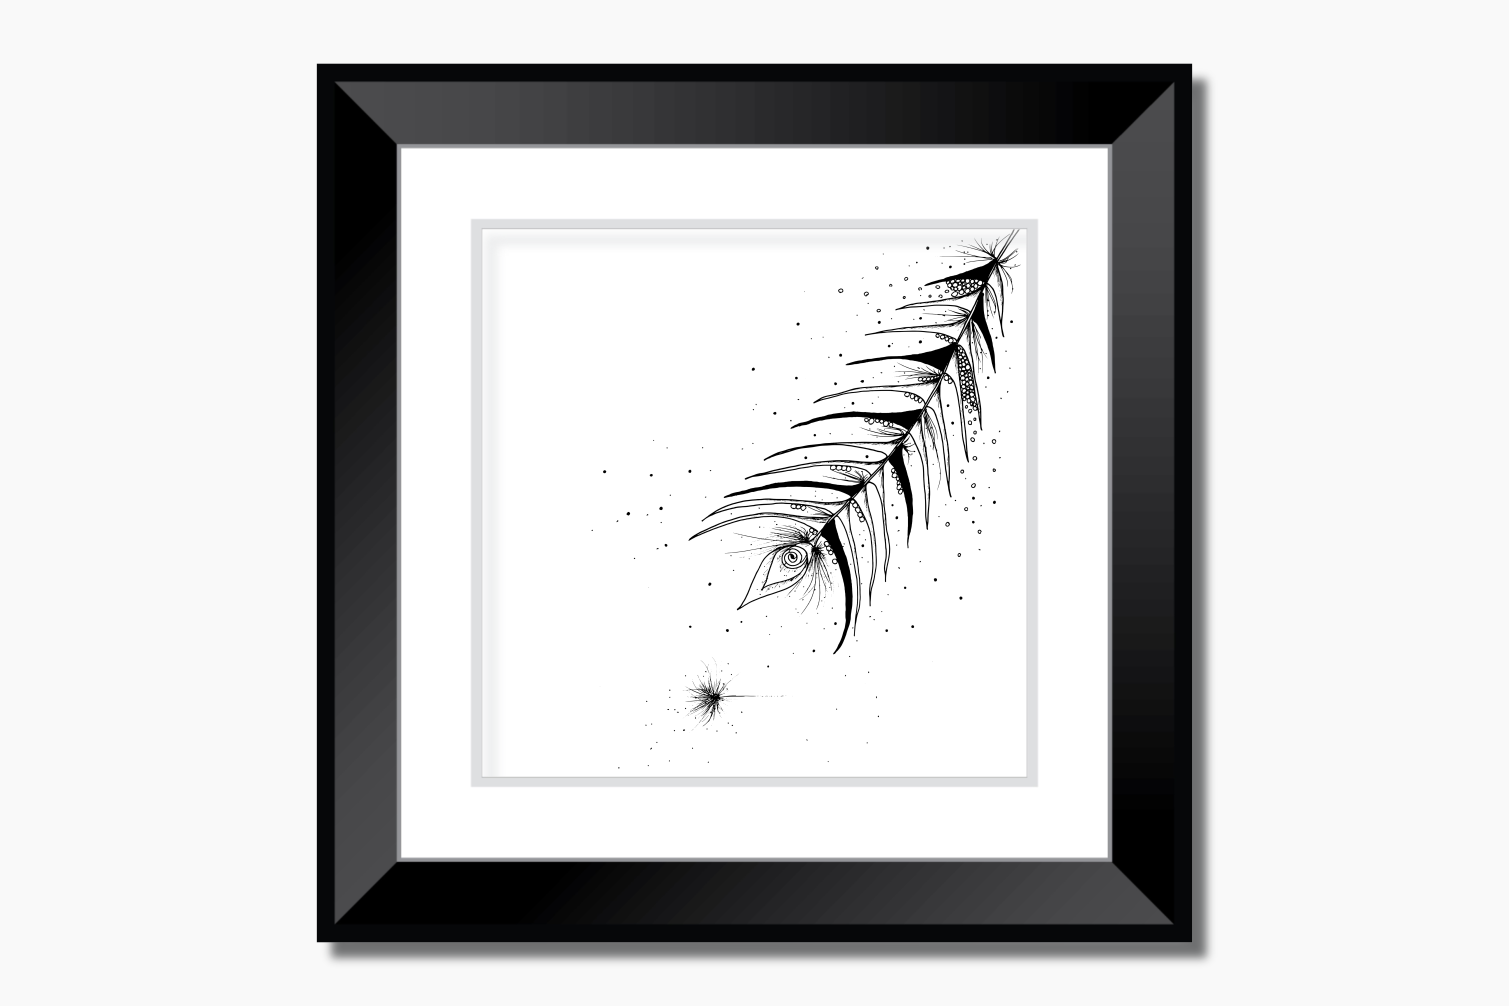 Tribal Feather Floral Ink Art, A1, SVG example image 5